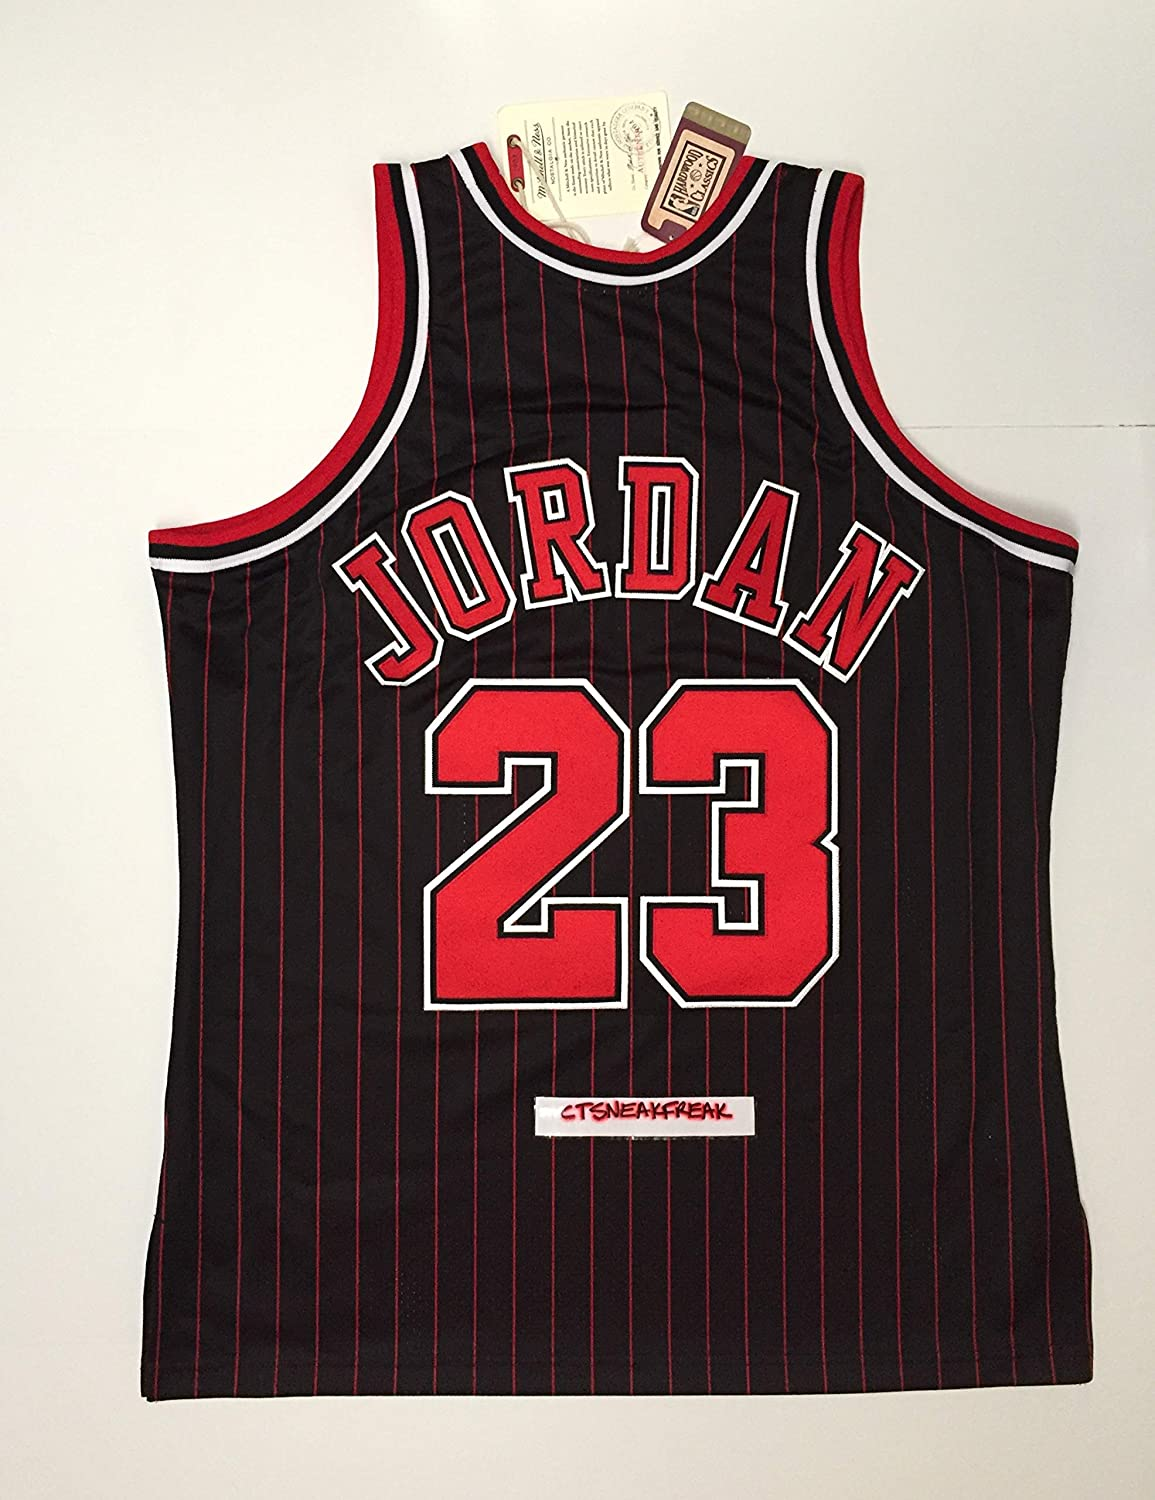 5900723f06ae Amazon.com   Mitchell   Ness Michael Jordan 95-96 Chicago Bulls Jersey 48  XL   Sports Fan Jerseys   Sports   Outdoors